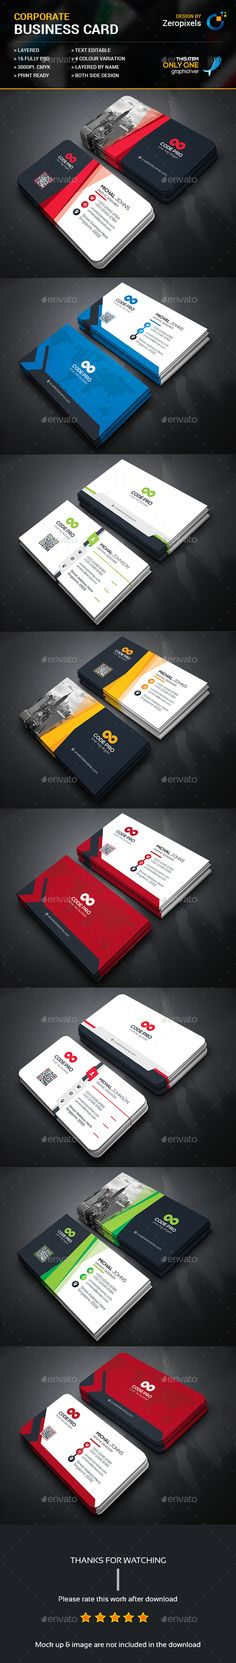 Corporate Business Card Templates PSD Bundle